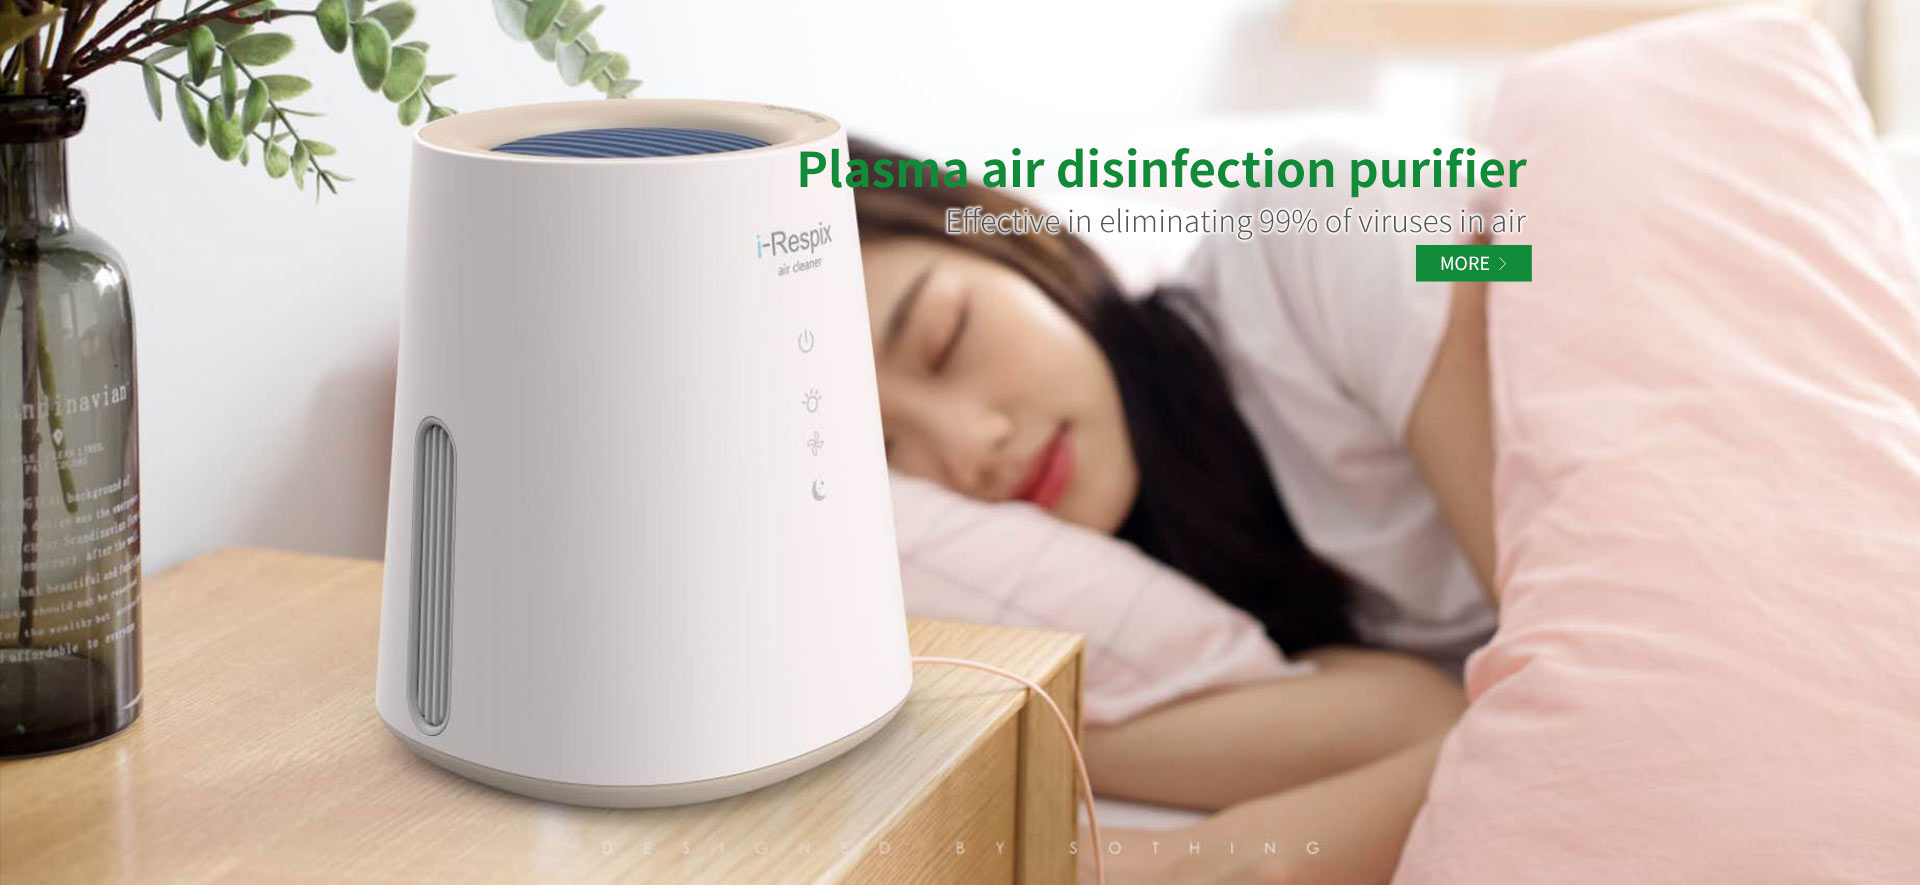 PLASMA AIR DISINFECTION PURIFIER